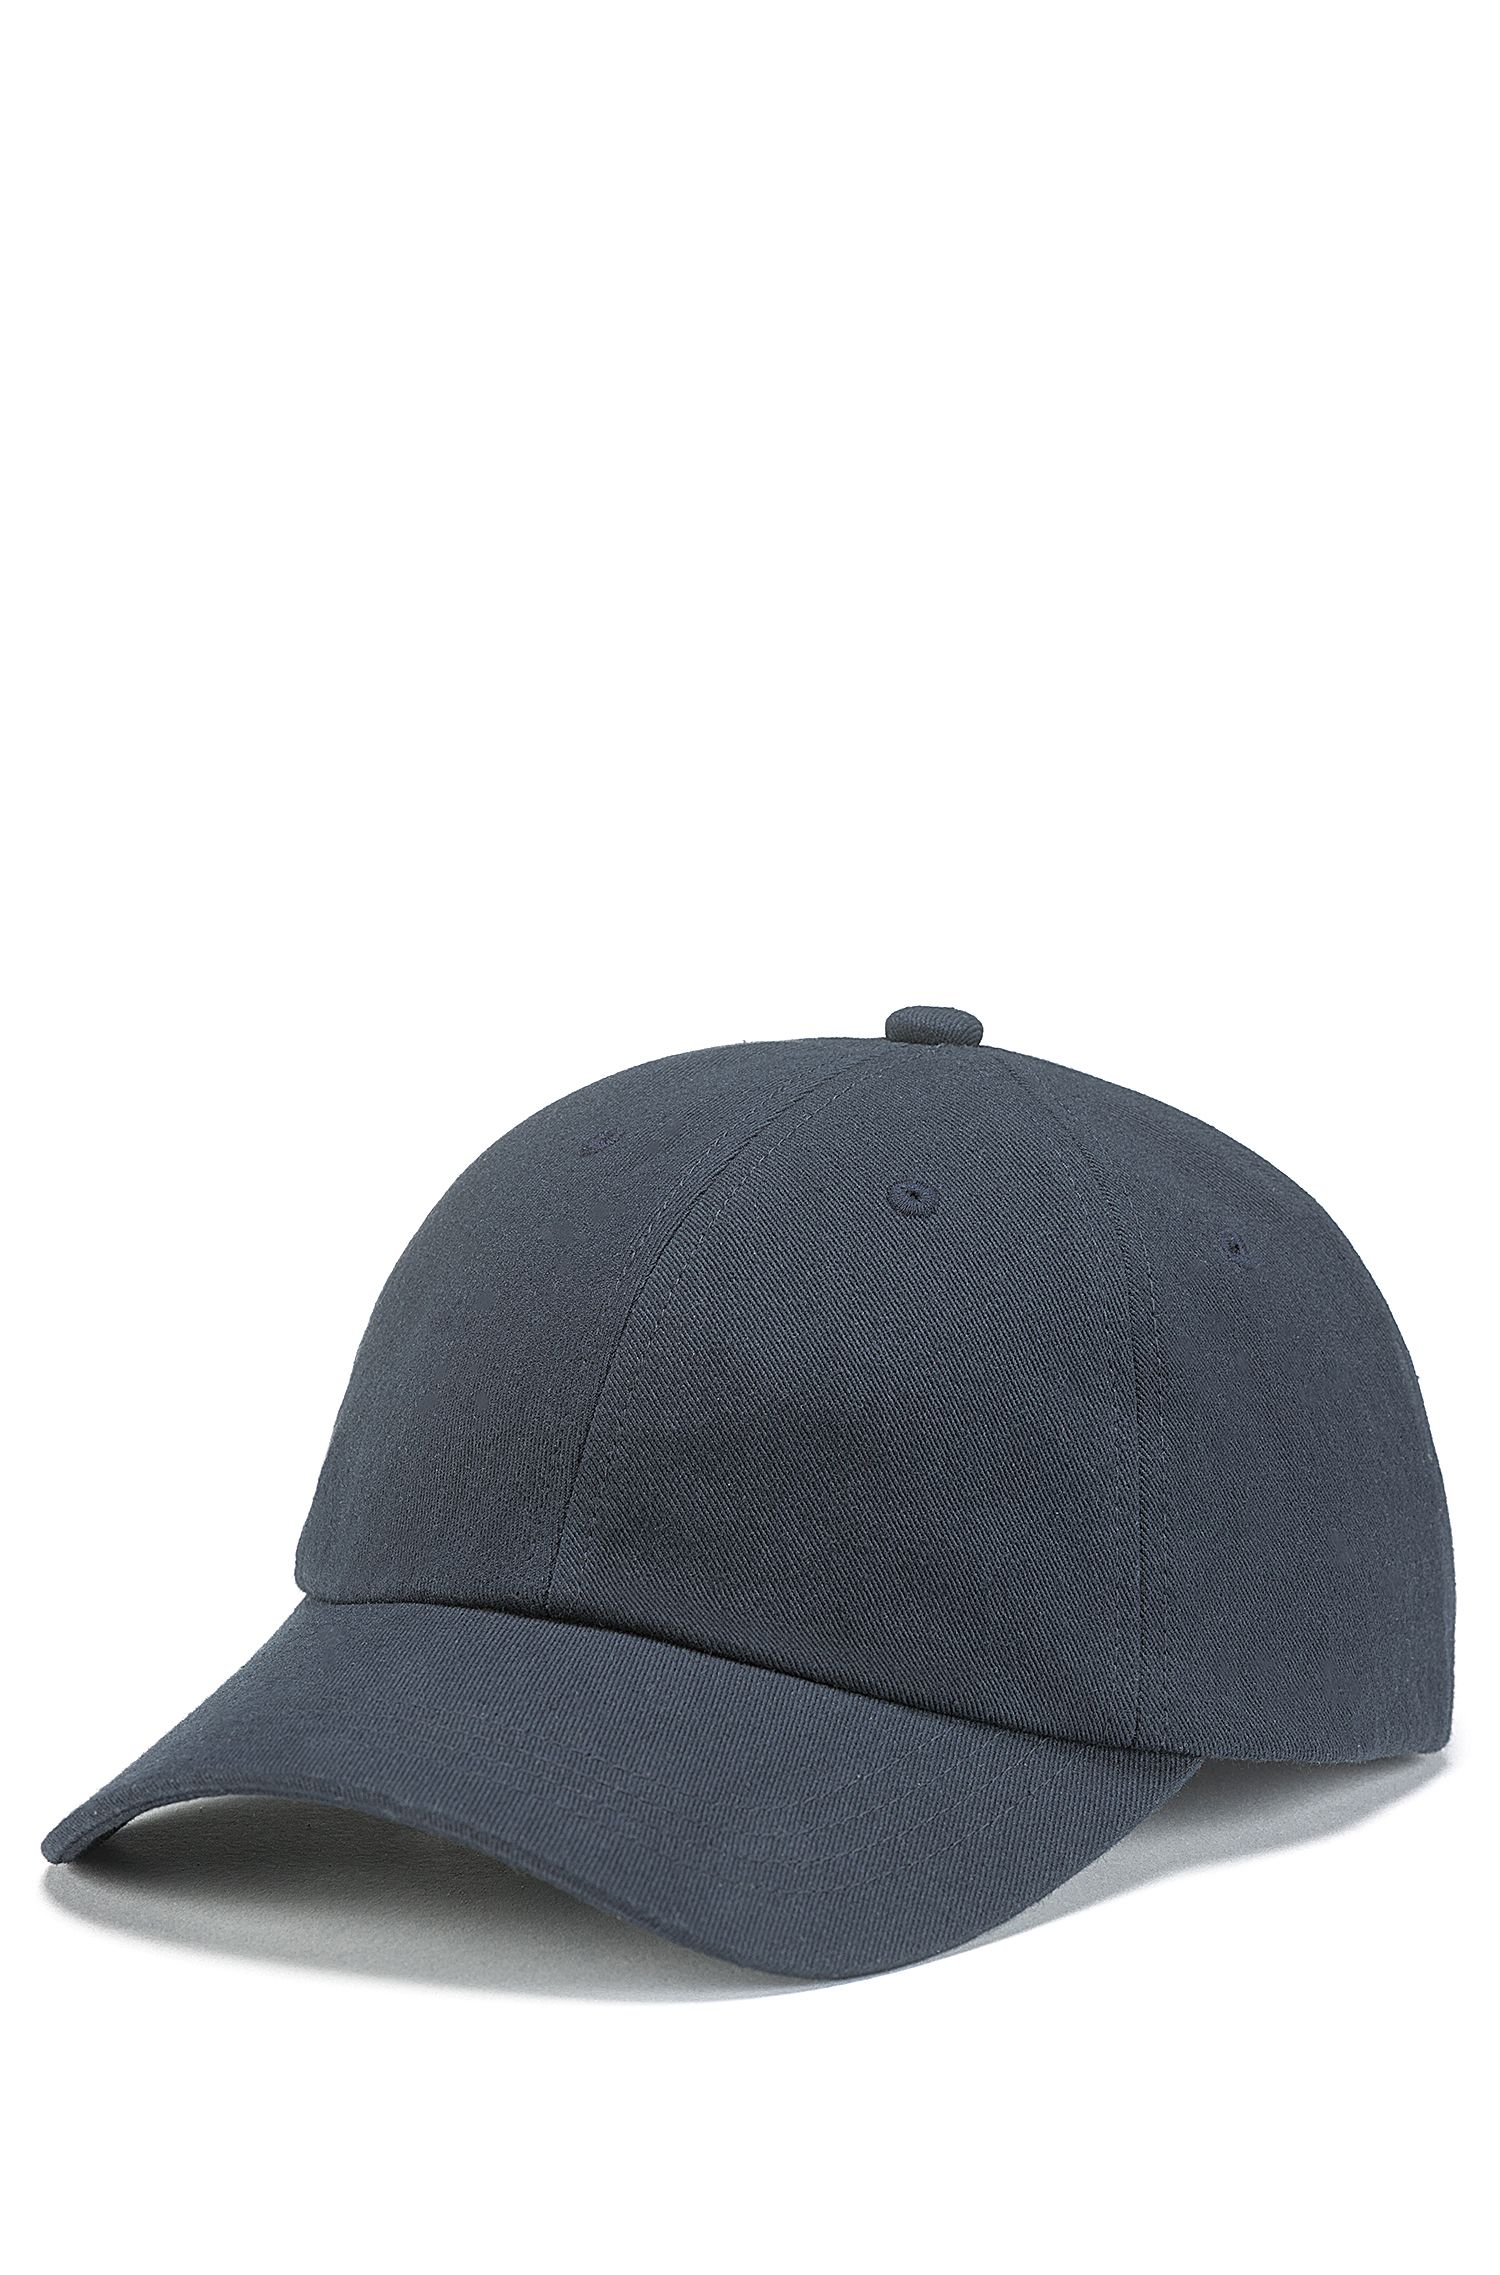 Adjustable cap in cotton twill with reverse-logo embroidery, Dark Blue